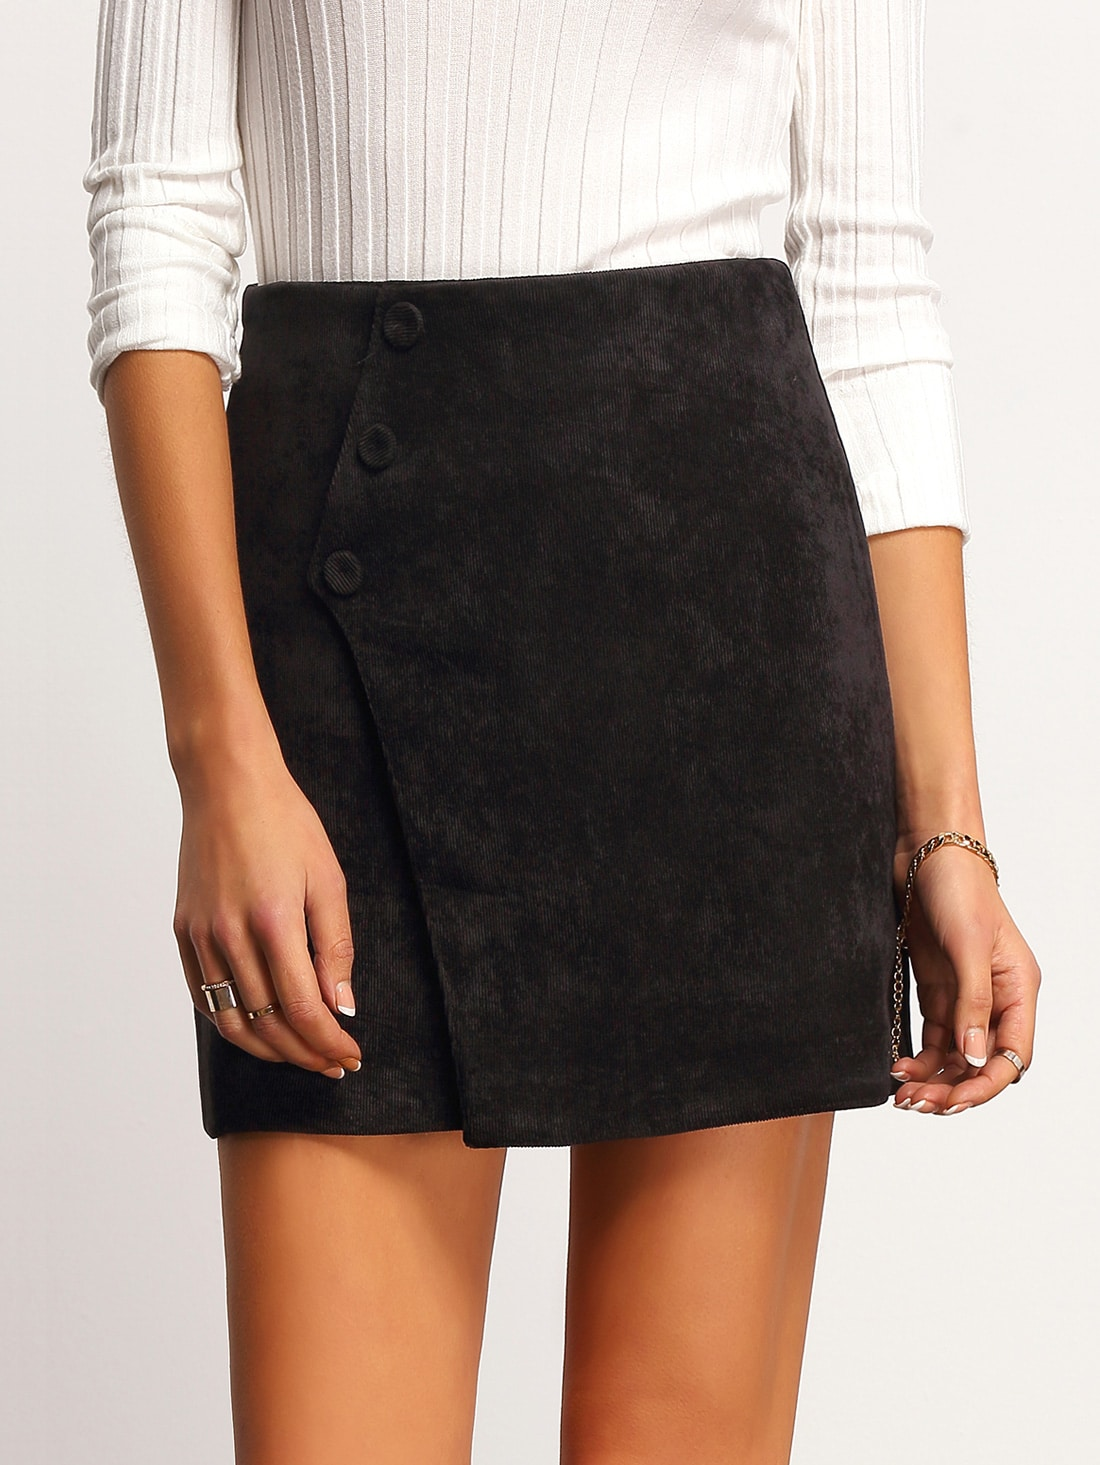 Our A-line skirt joins the corduroy family. Mix up your standard denim with this skirt and pair with a classic white tee for a beautiful update to your on-the-go uniform. 32